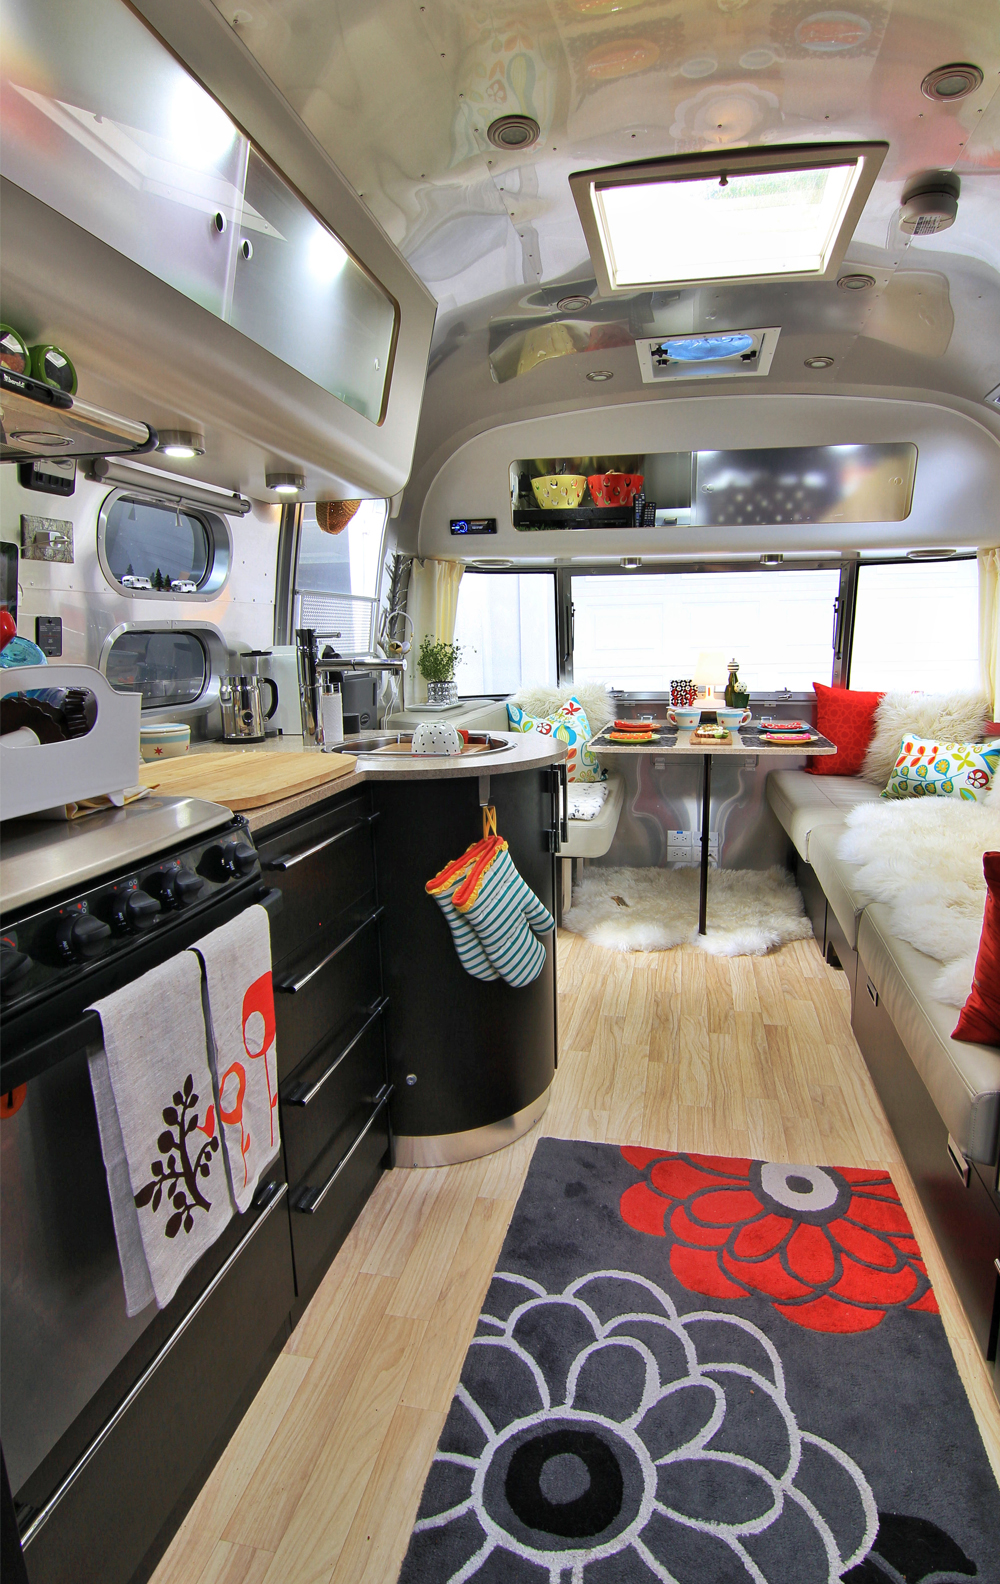 A View of the Airstream inside facing the dinette